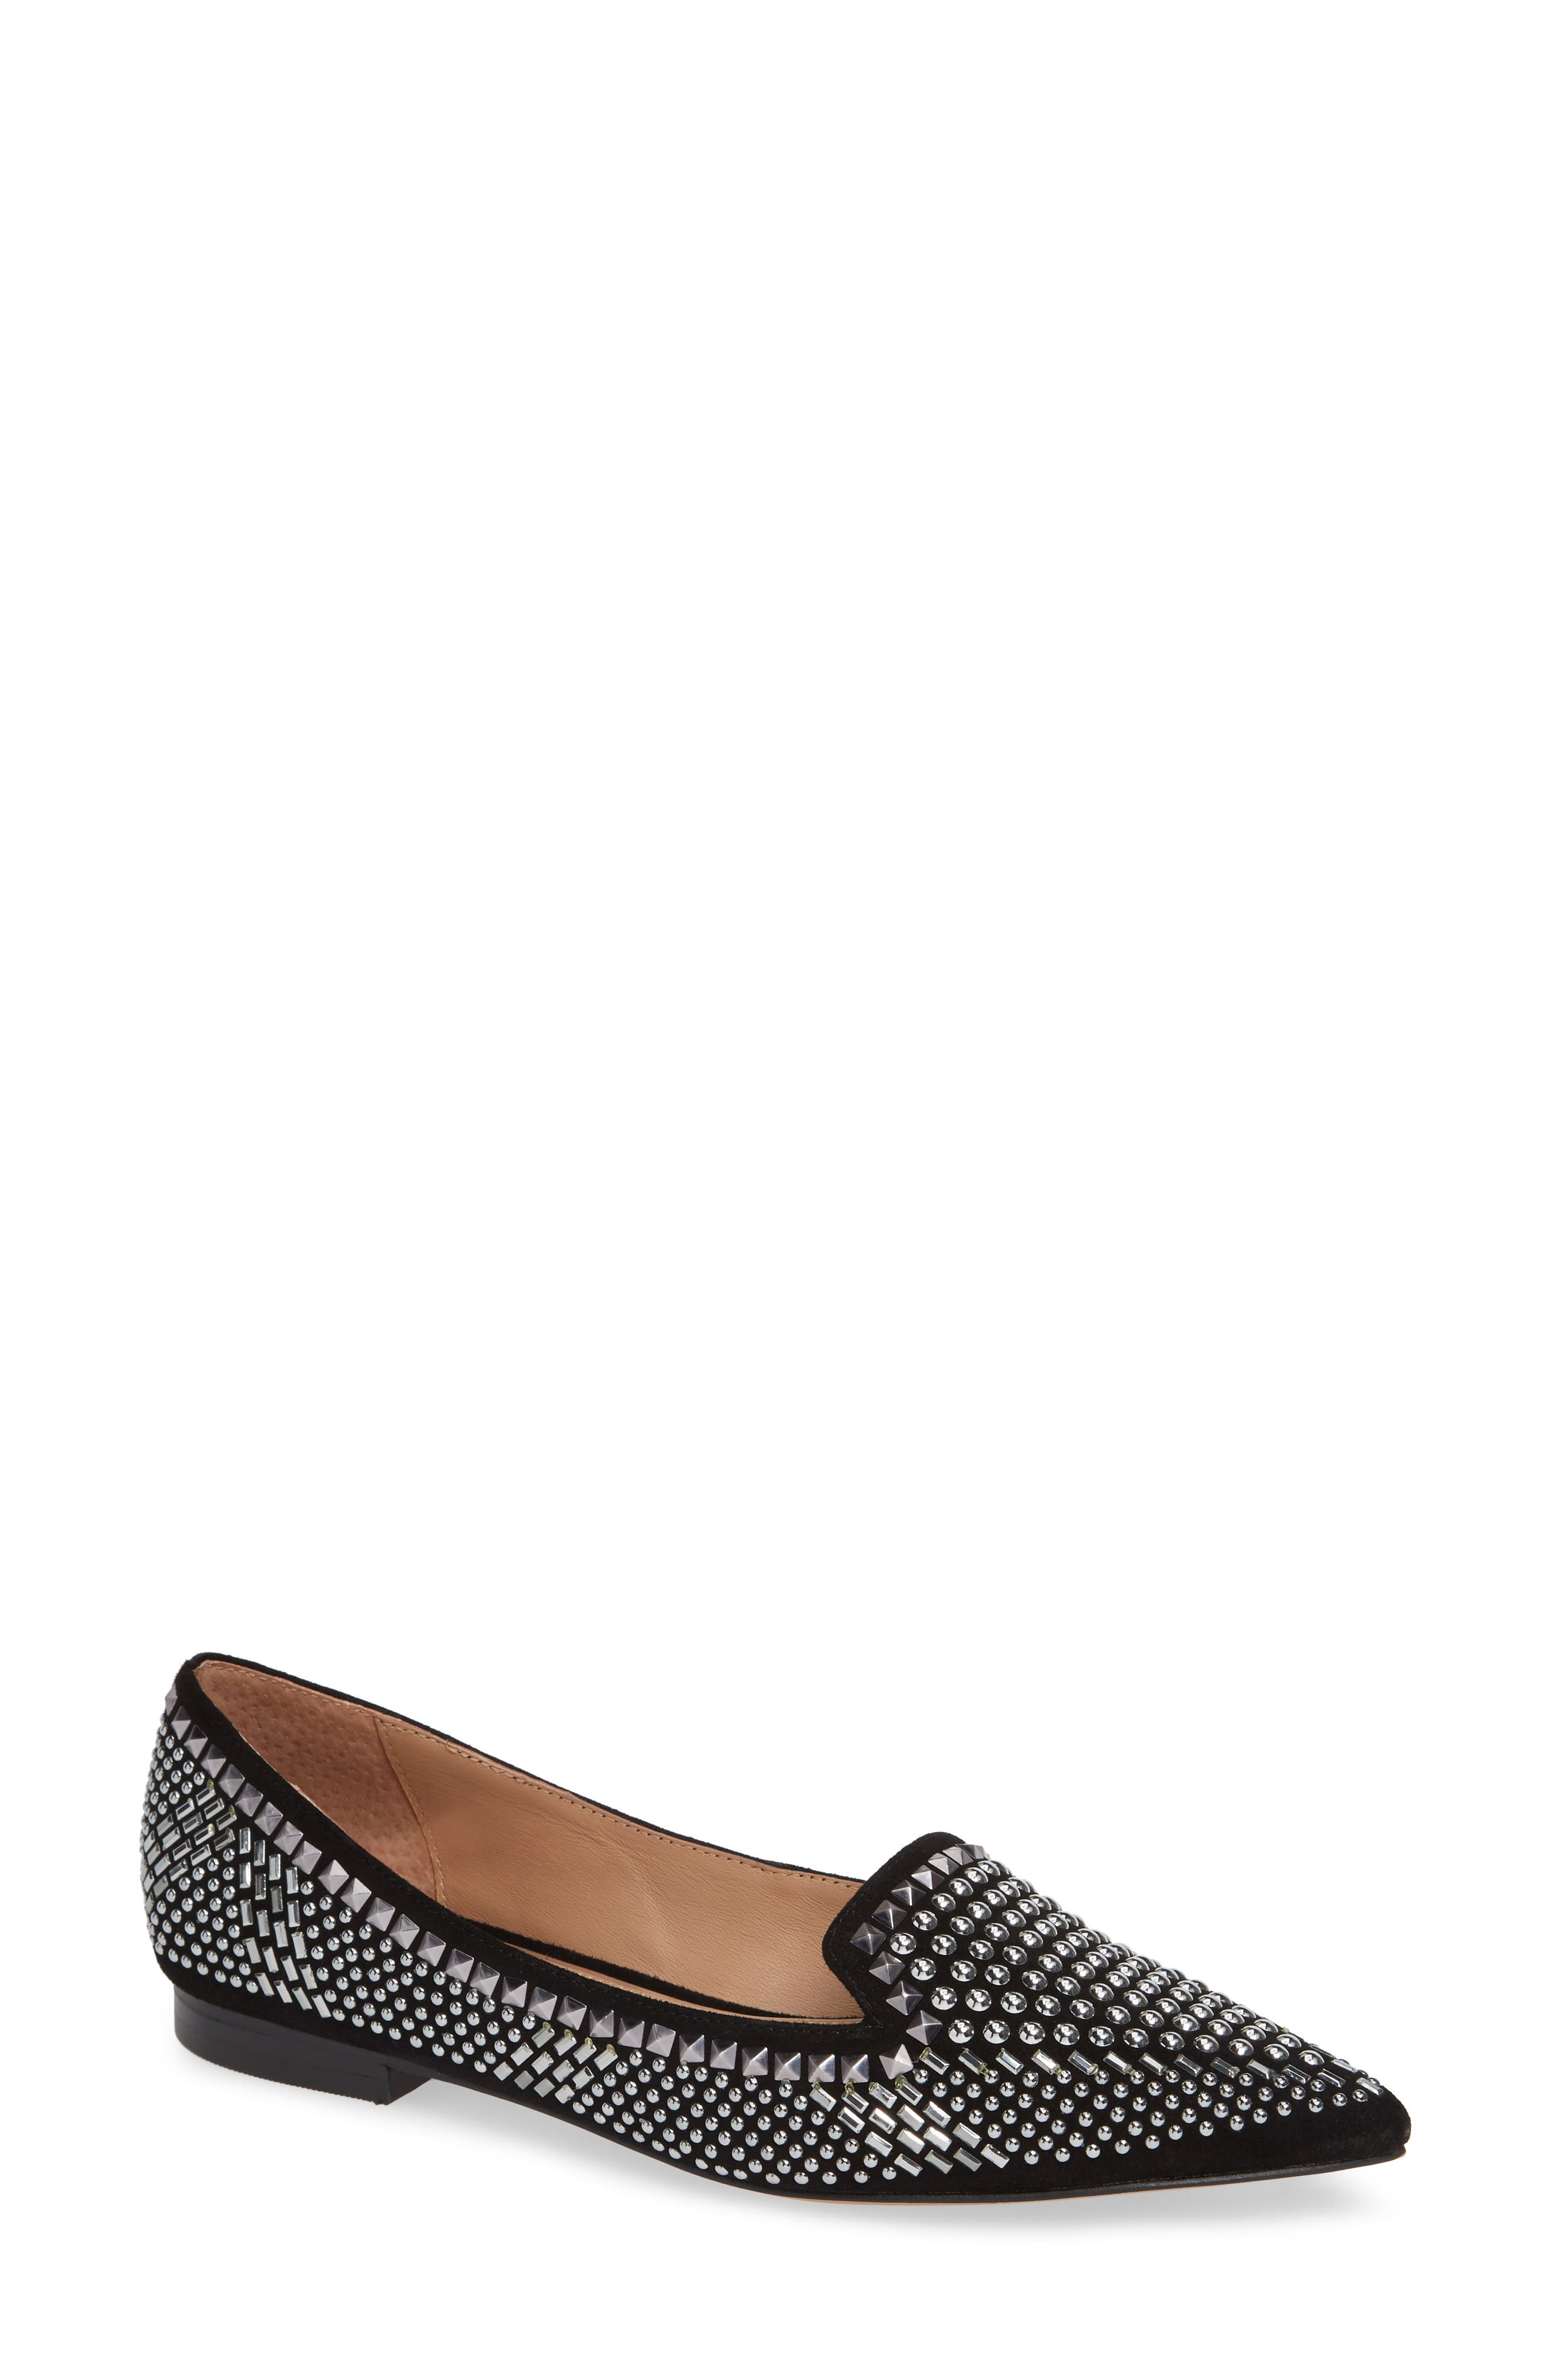 4157b6dce2f  130 Women s Linea Paolo Portia Studded Loafer